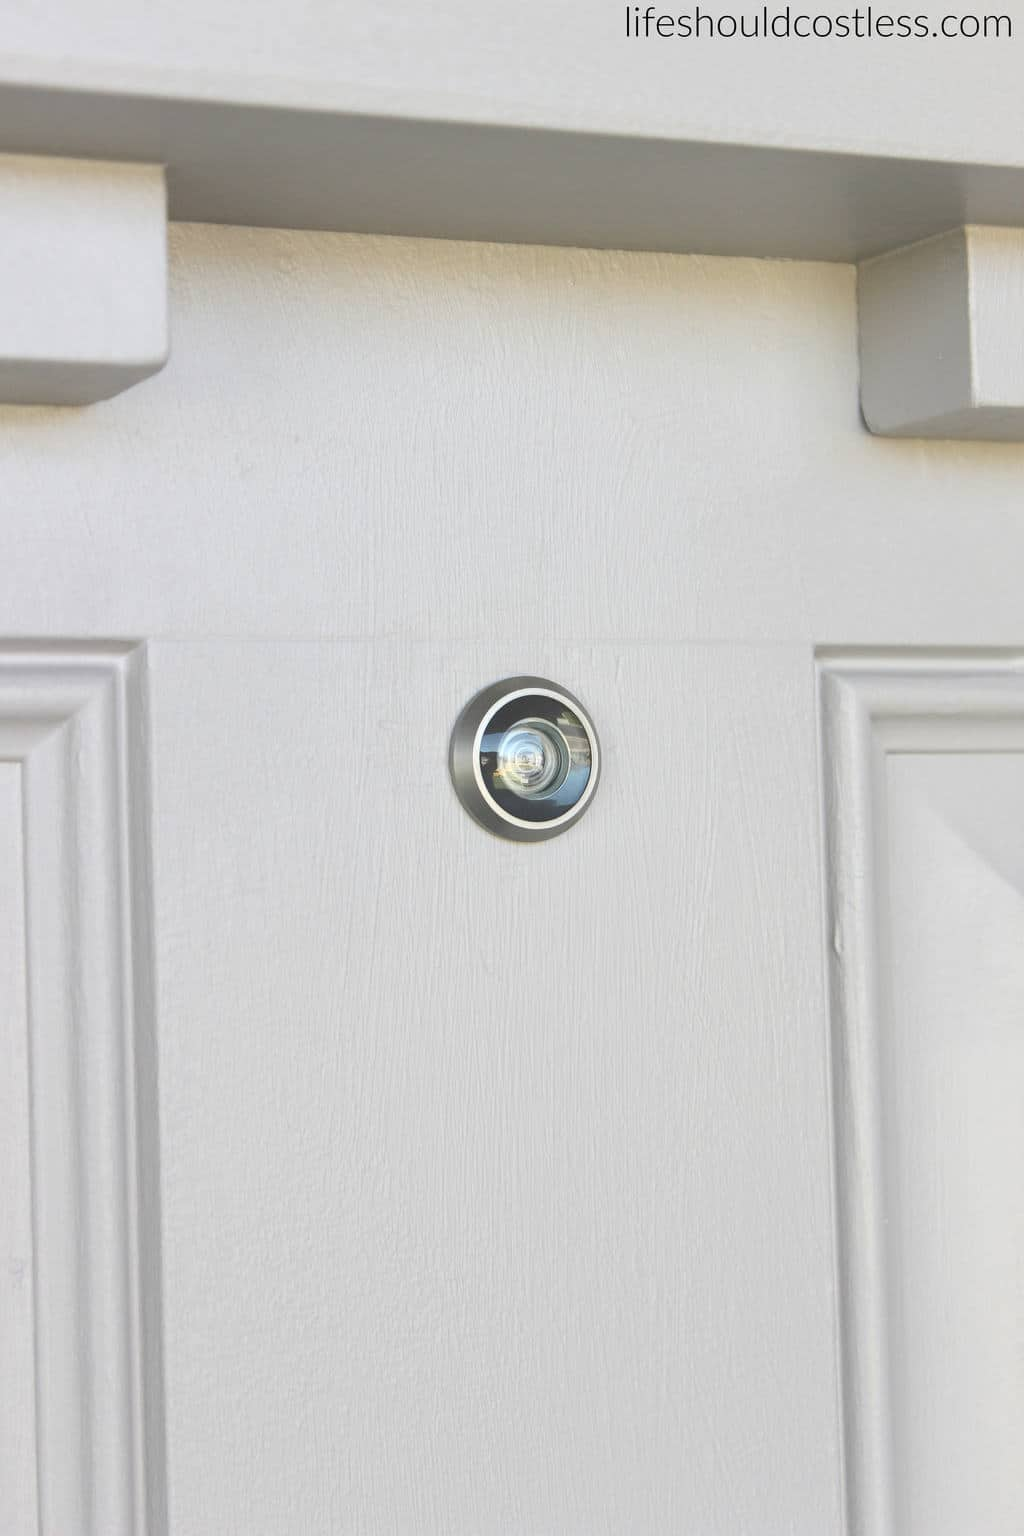 DIY How to install a peep hole in your front door. After 2.